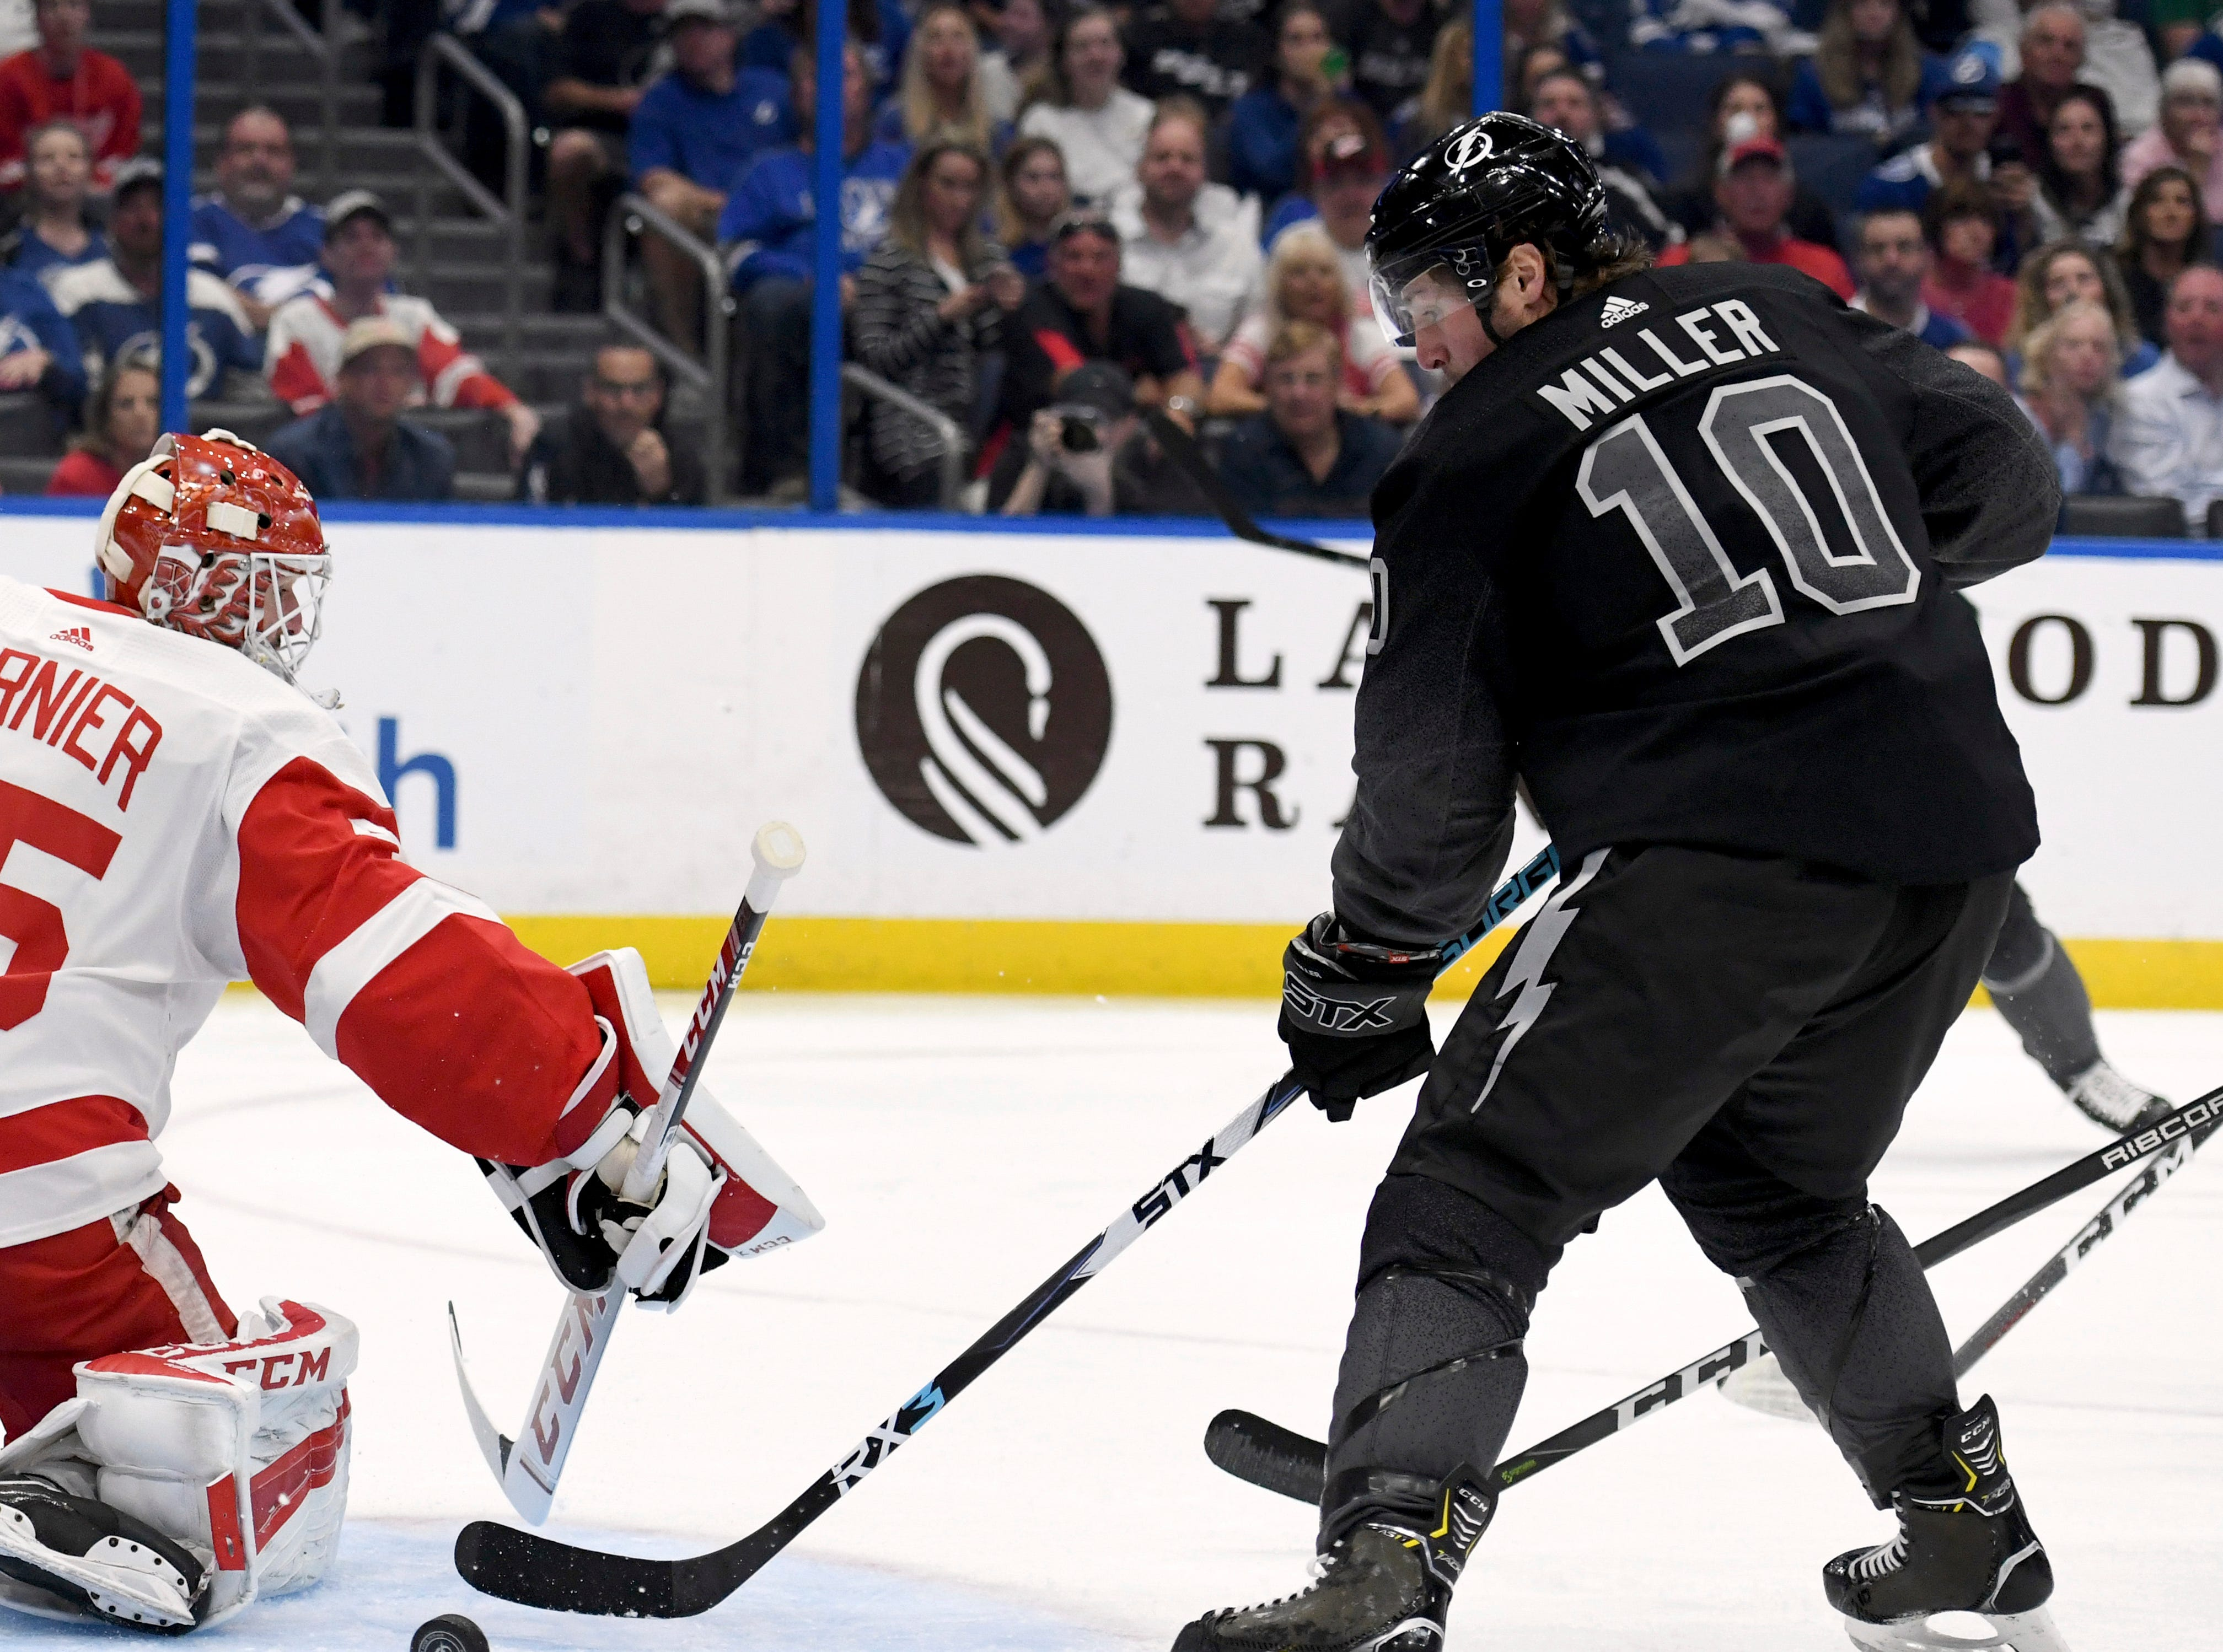 Detroit Red Wings goaltender Jonathan Bernier (45) deflects a shot wide of the net as Tampa Bay Lightning center J.T. Miller (10) looks for a shot during the second period of an NHL hockey game Saturday, March 9, 2019, in Tampa, Fla. (AP Photo/Jason Behnken)